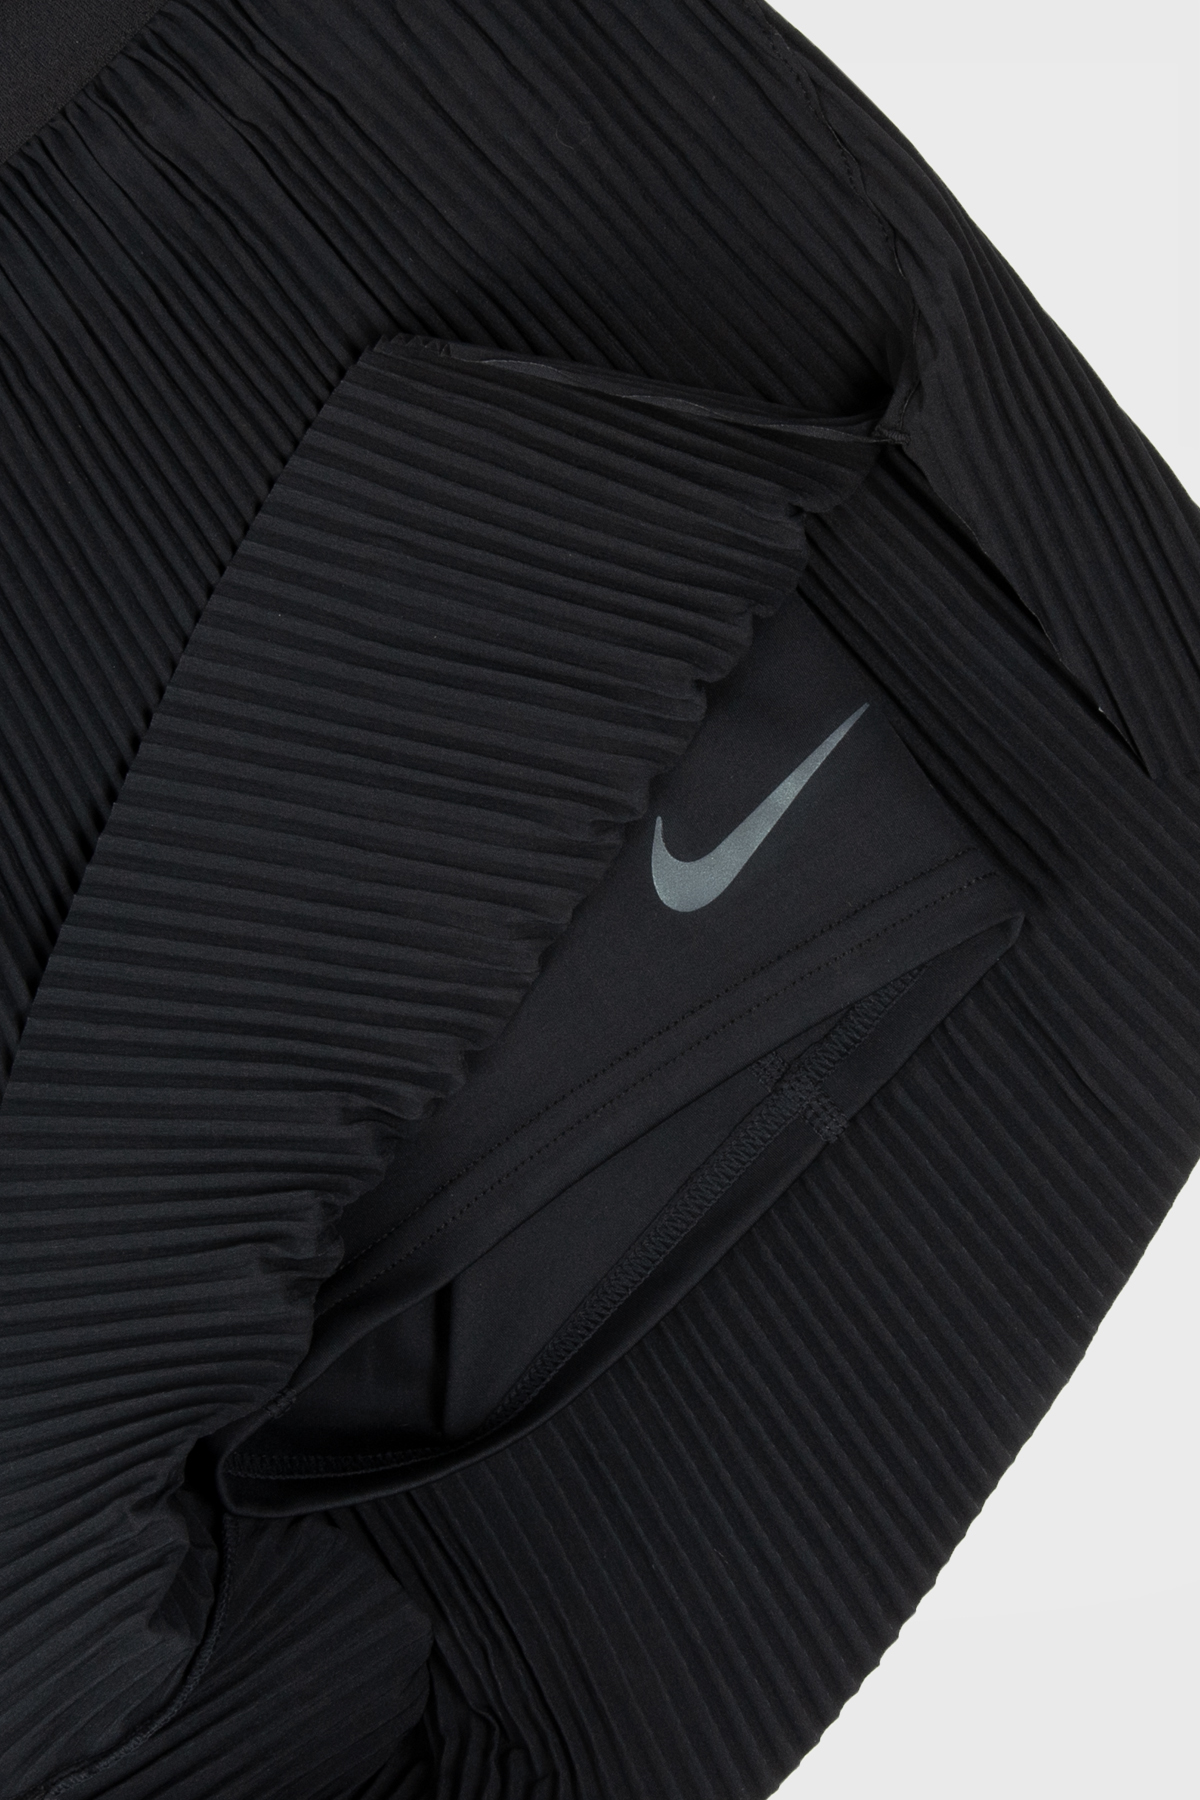 Nike W - Run Division Short 3in1 - Black